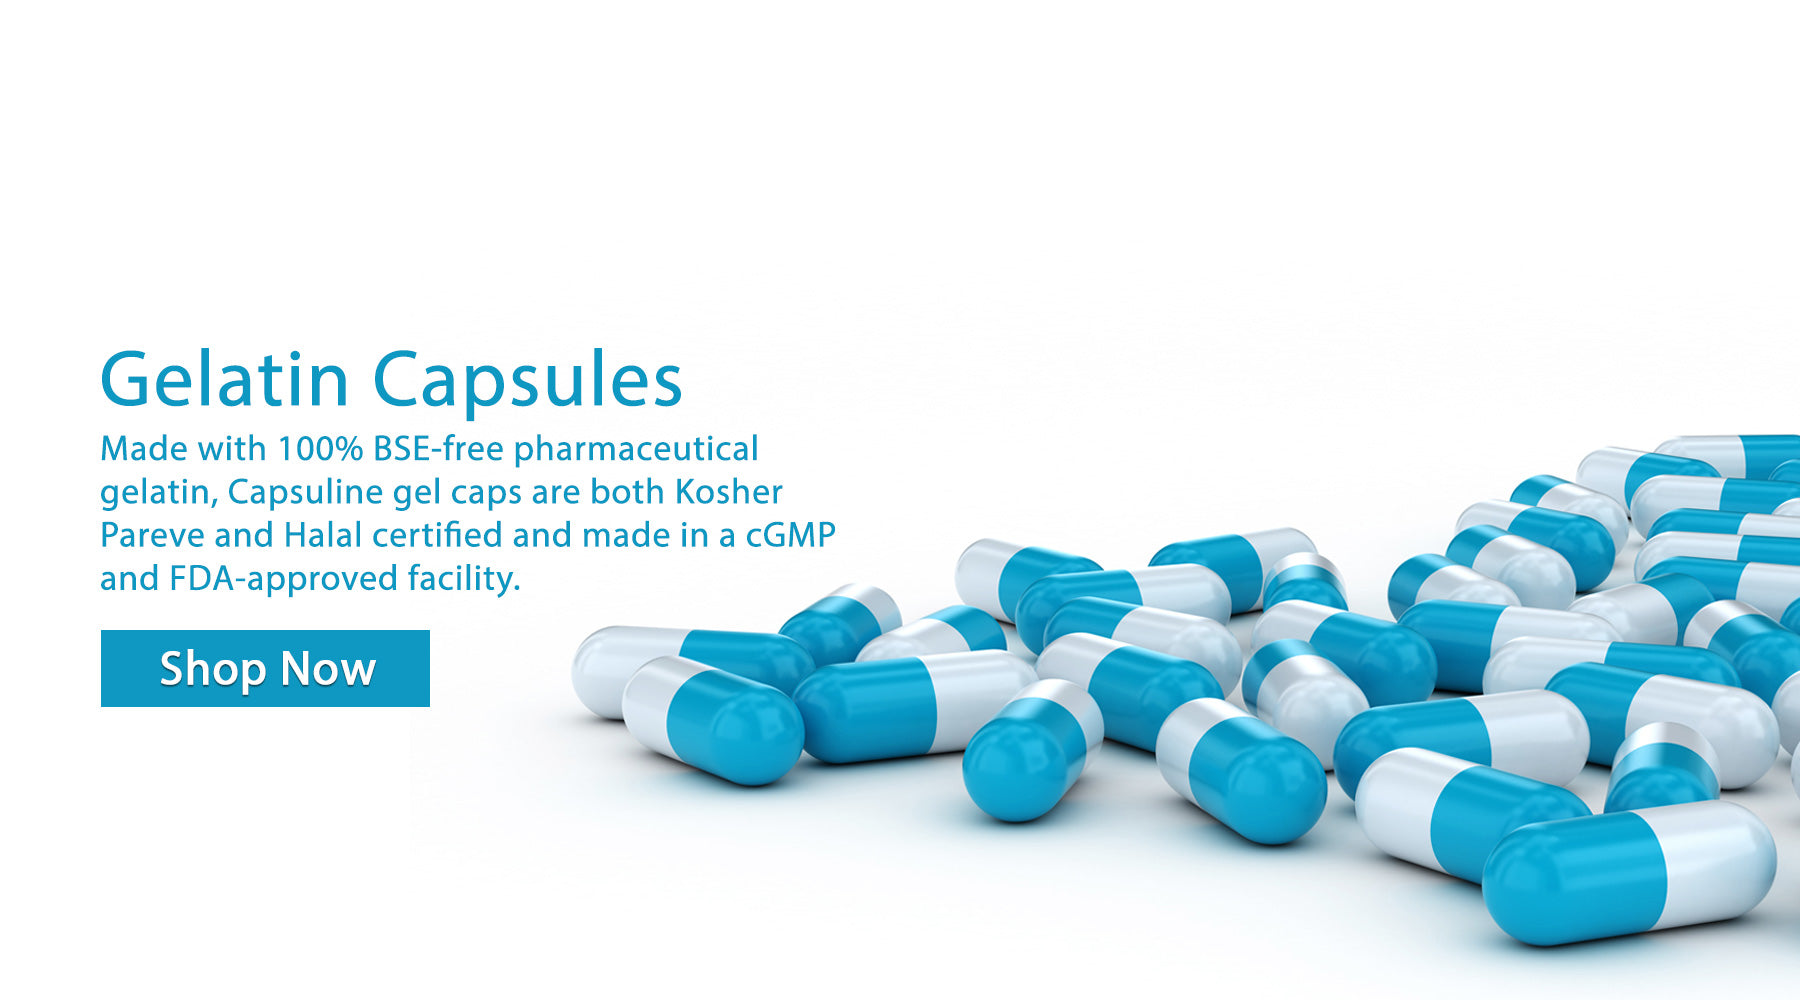 Made with 100% BSE-free pharmaceutical gelatin, Capsuline gel caps are both Kosher Pareve and Halal certified and made in a cGMP and FDA-approved facility.